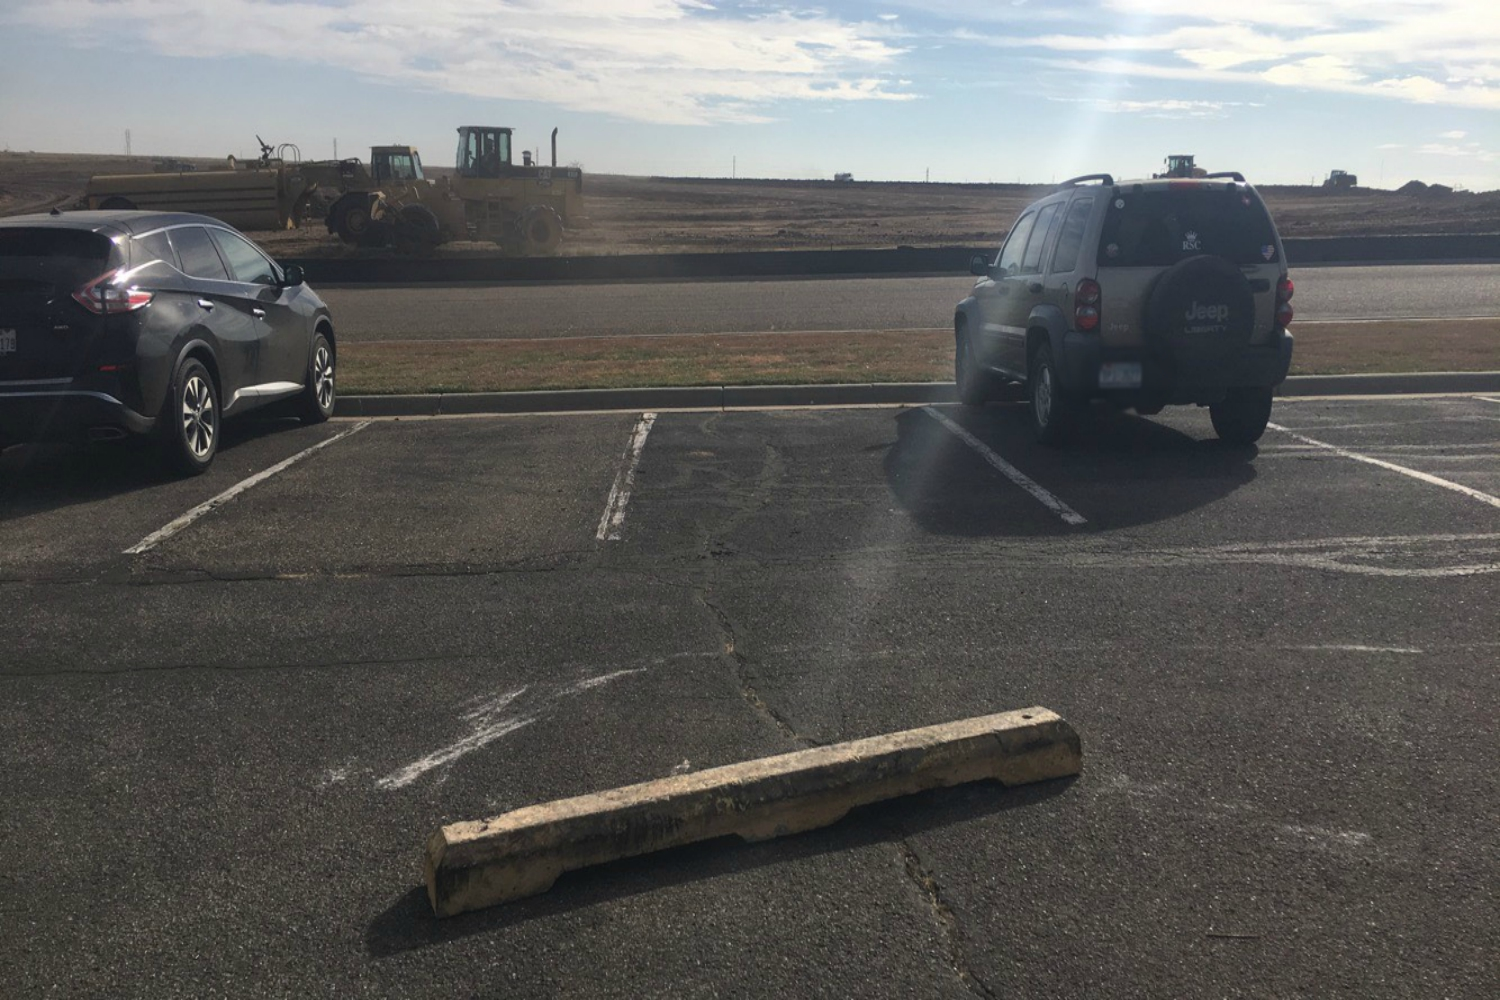 Parking spaces blocked by curb stopper